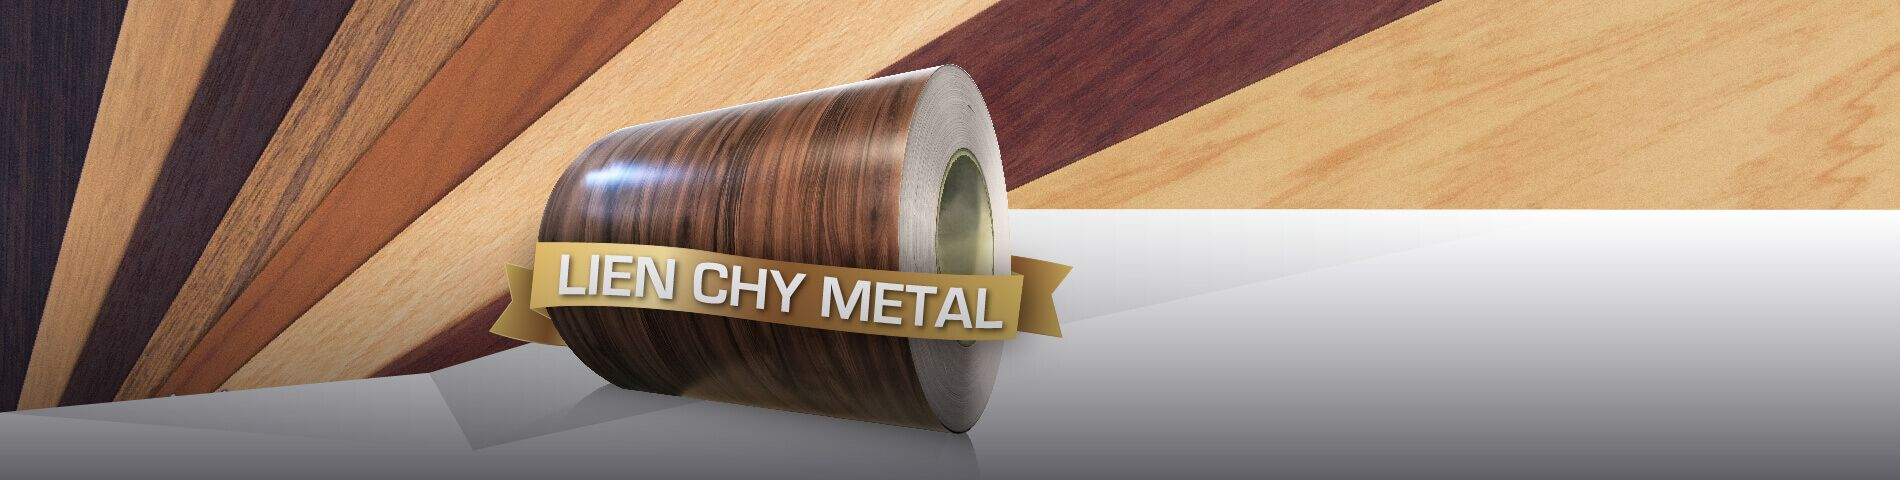 LAMINATED METAL LINKS COLOR AND BEAUTY